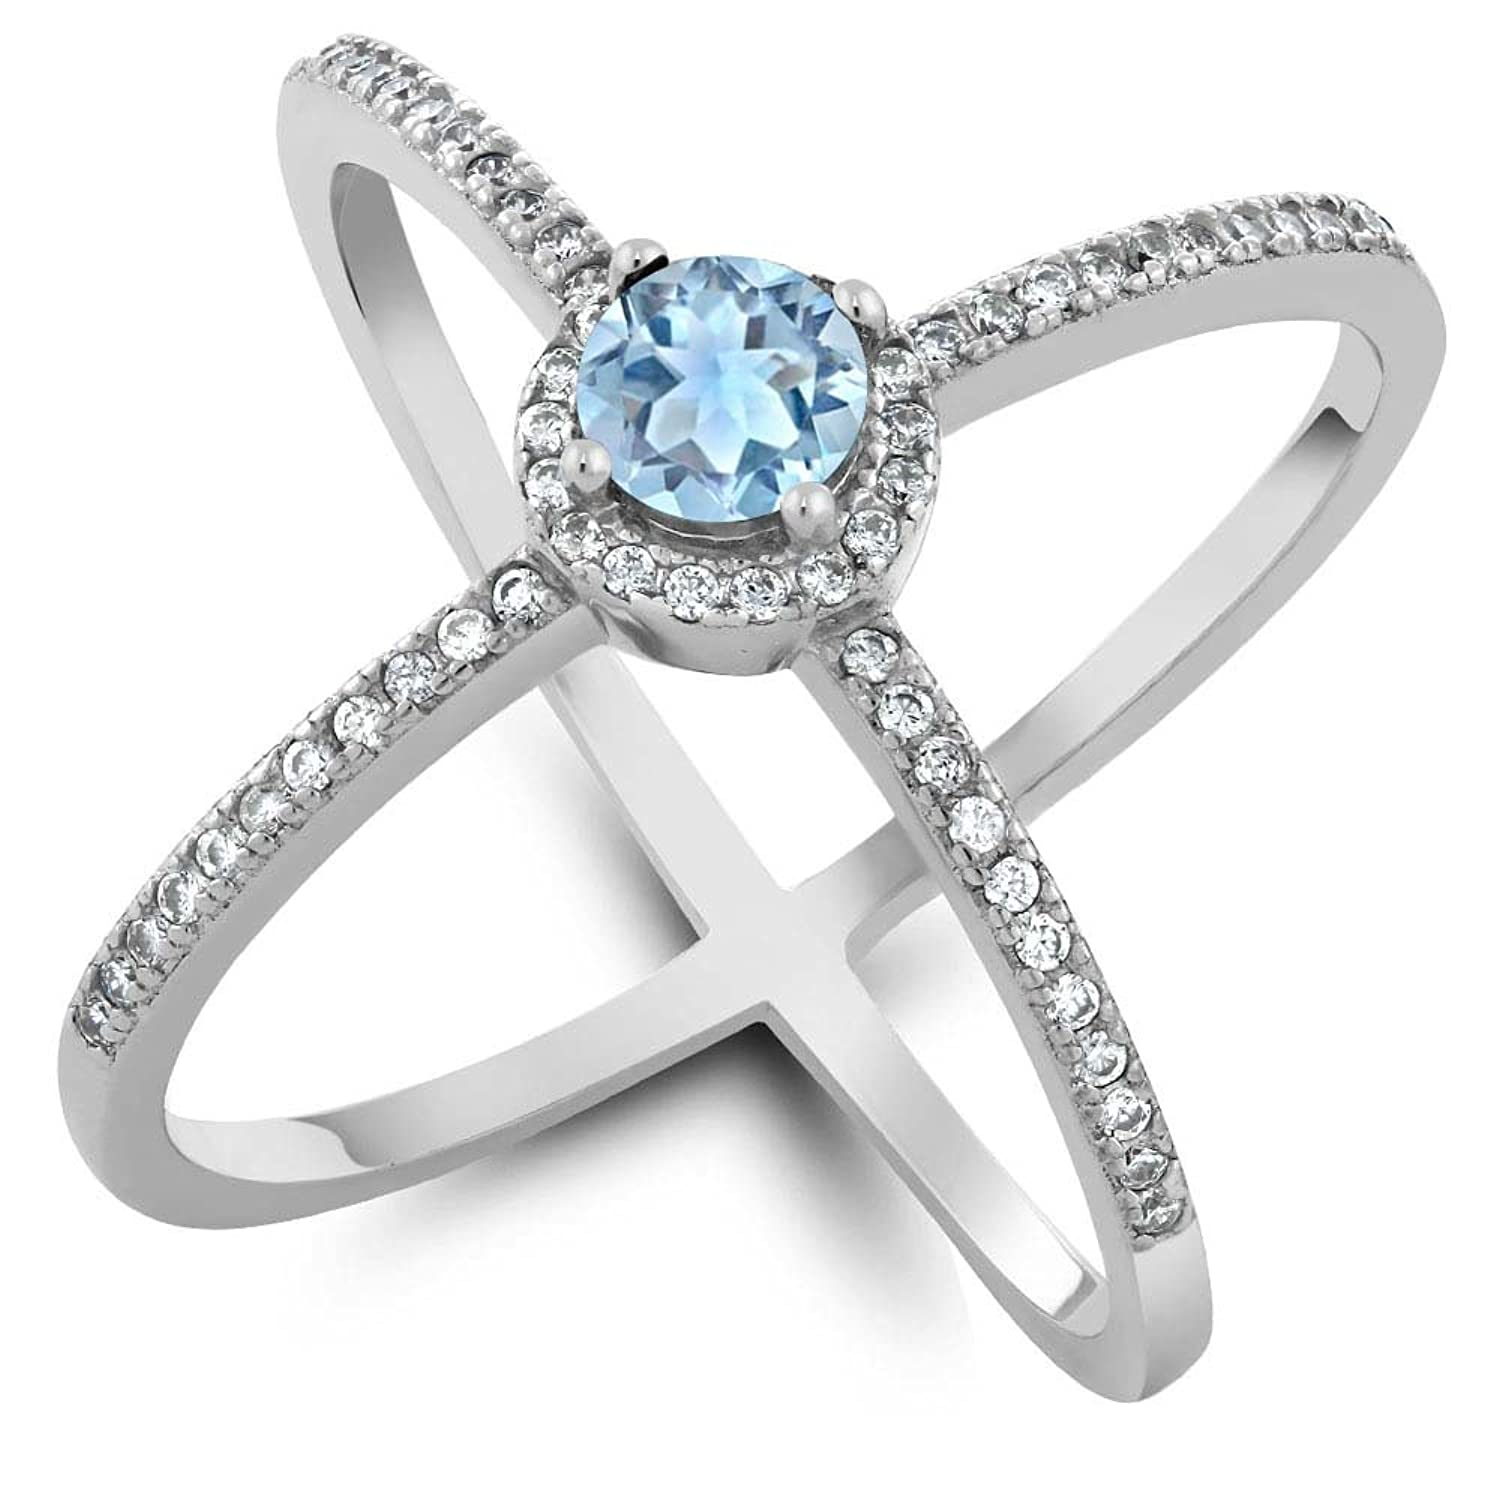 for weddings rings engagement that march main ring give diamond a aquamarine story run